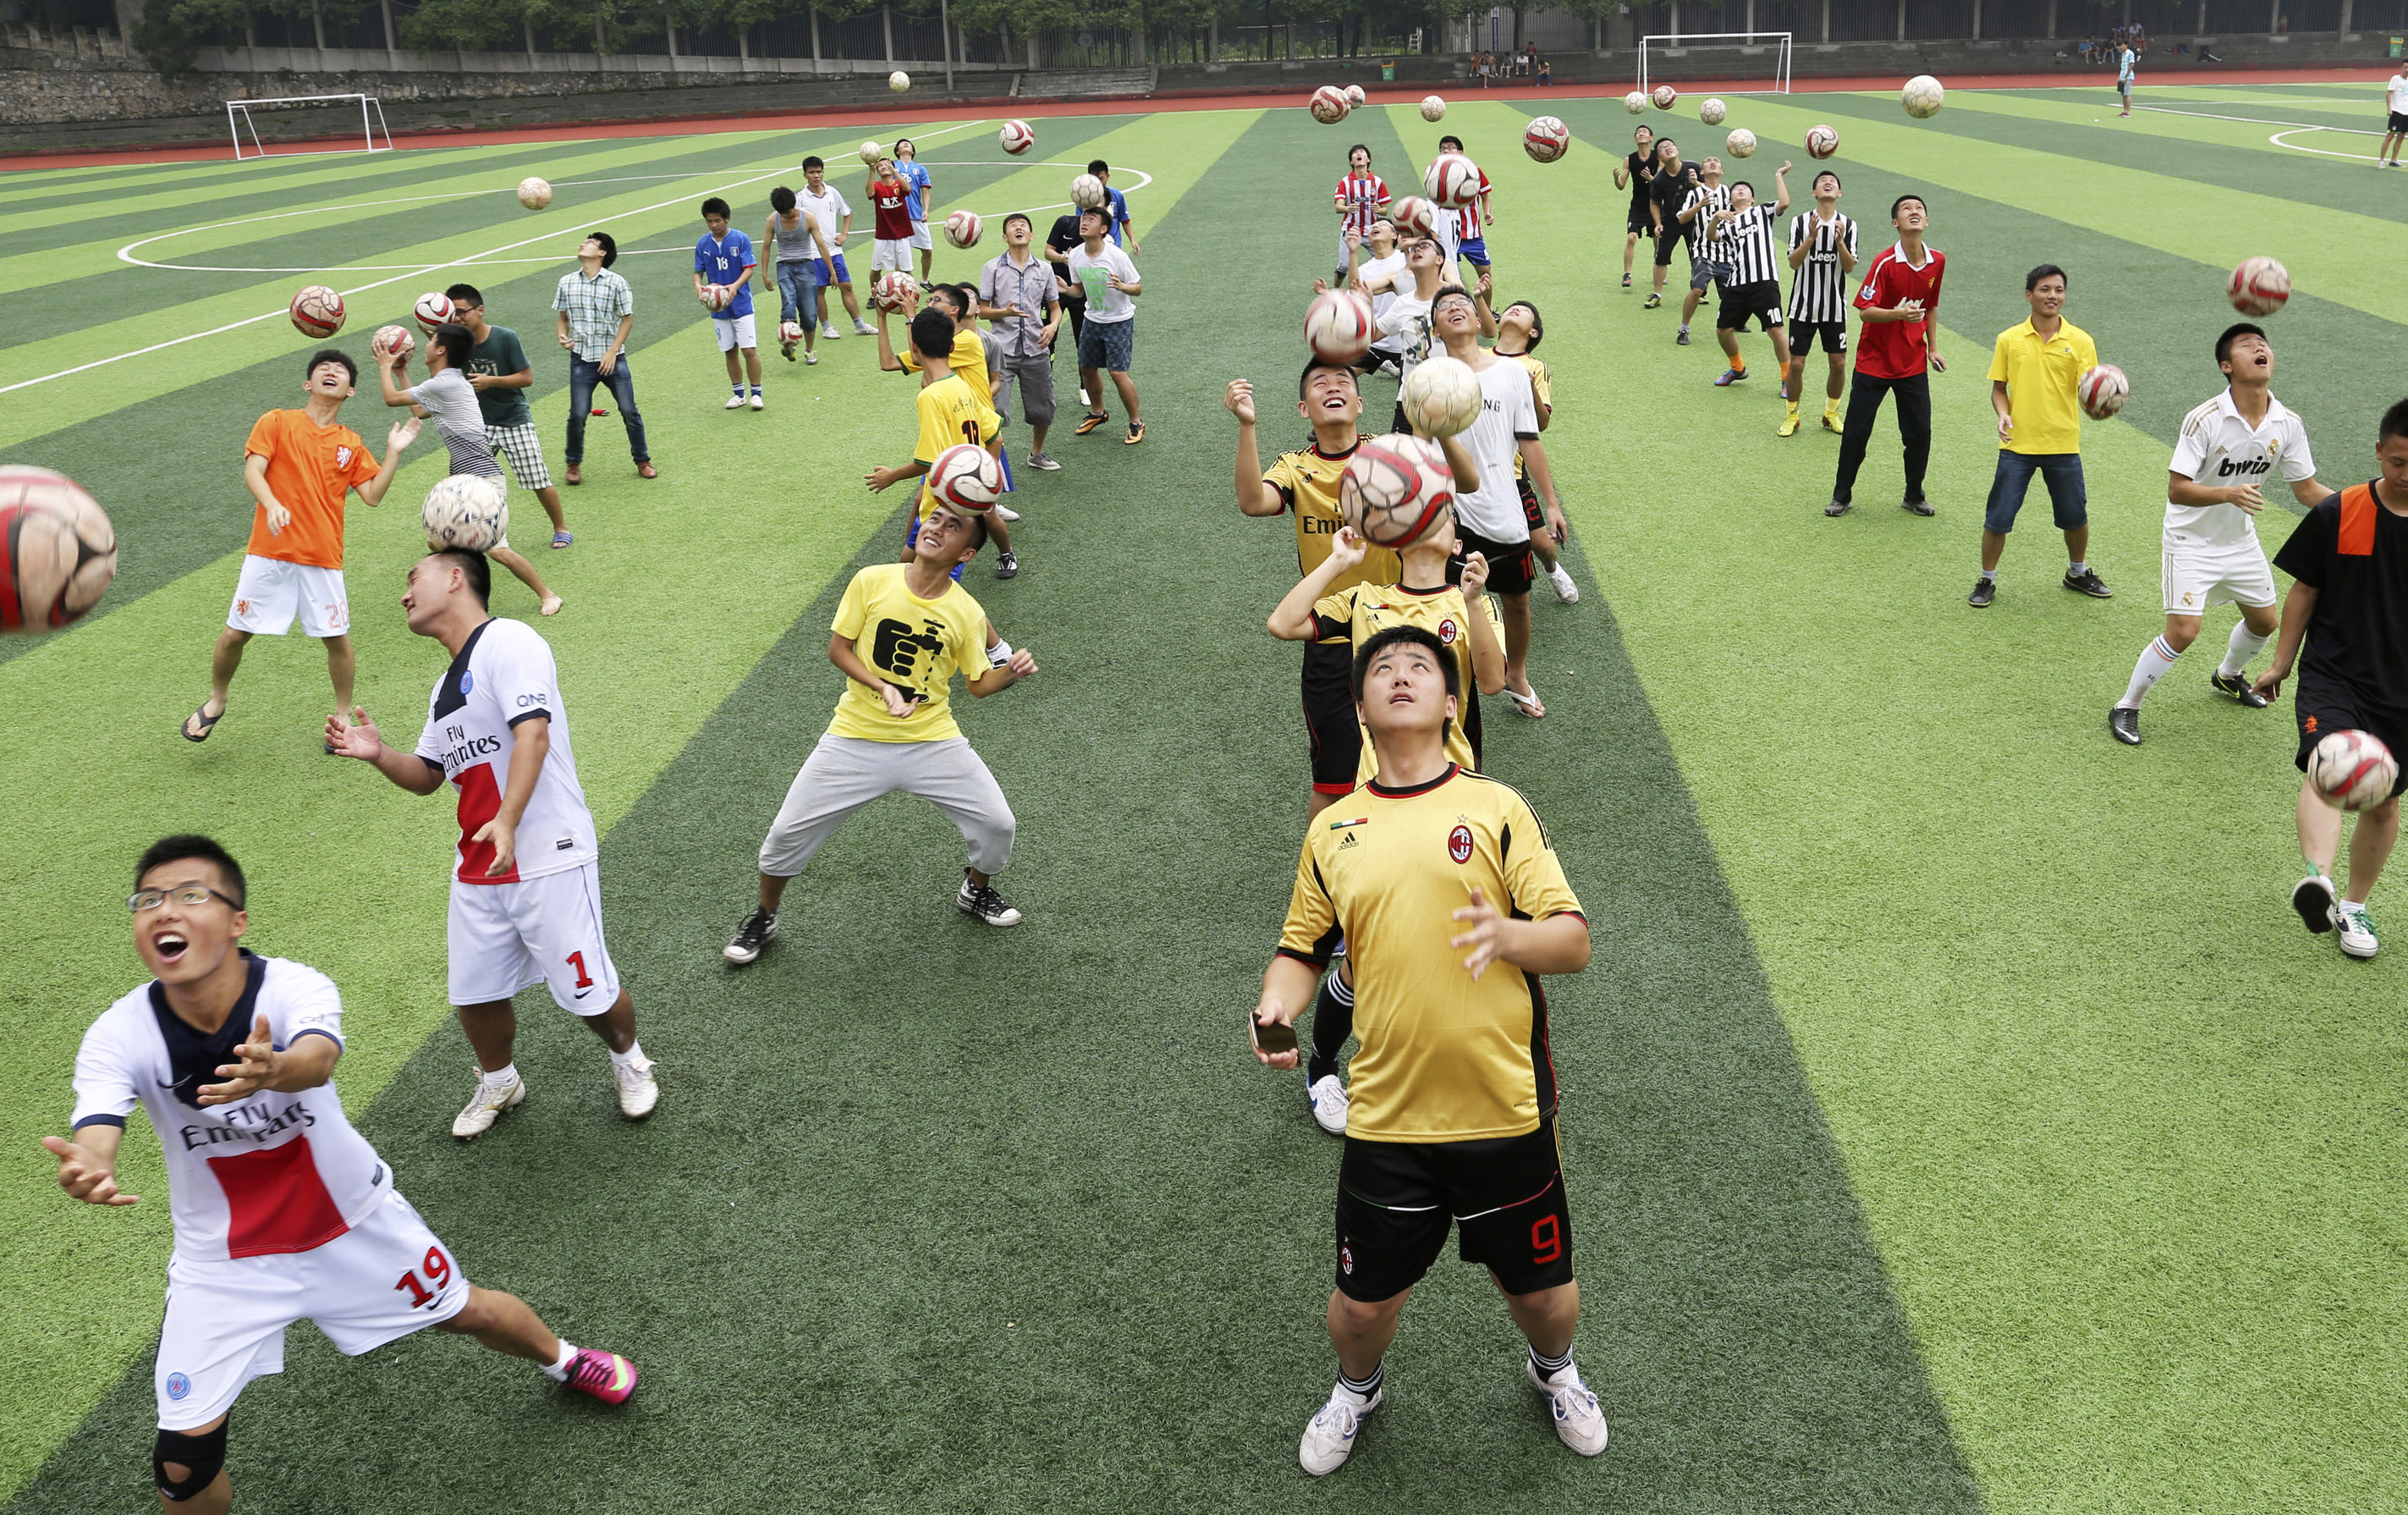 Students head soccer balls during a competition at the campus of University of South China in Hengyang, Hunan province, June 3, 2014.